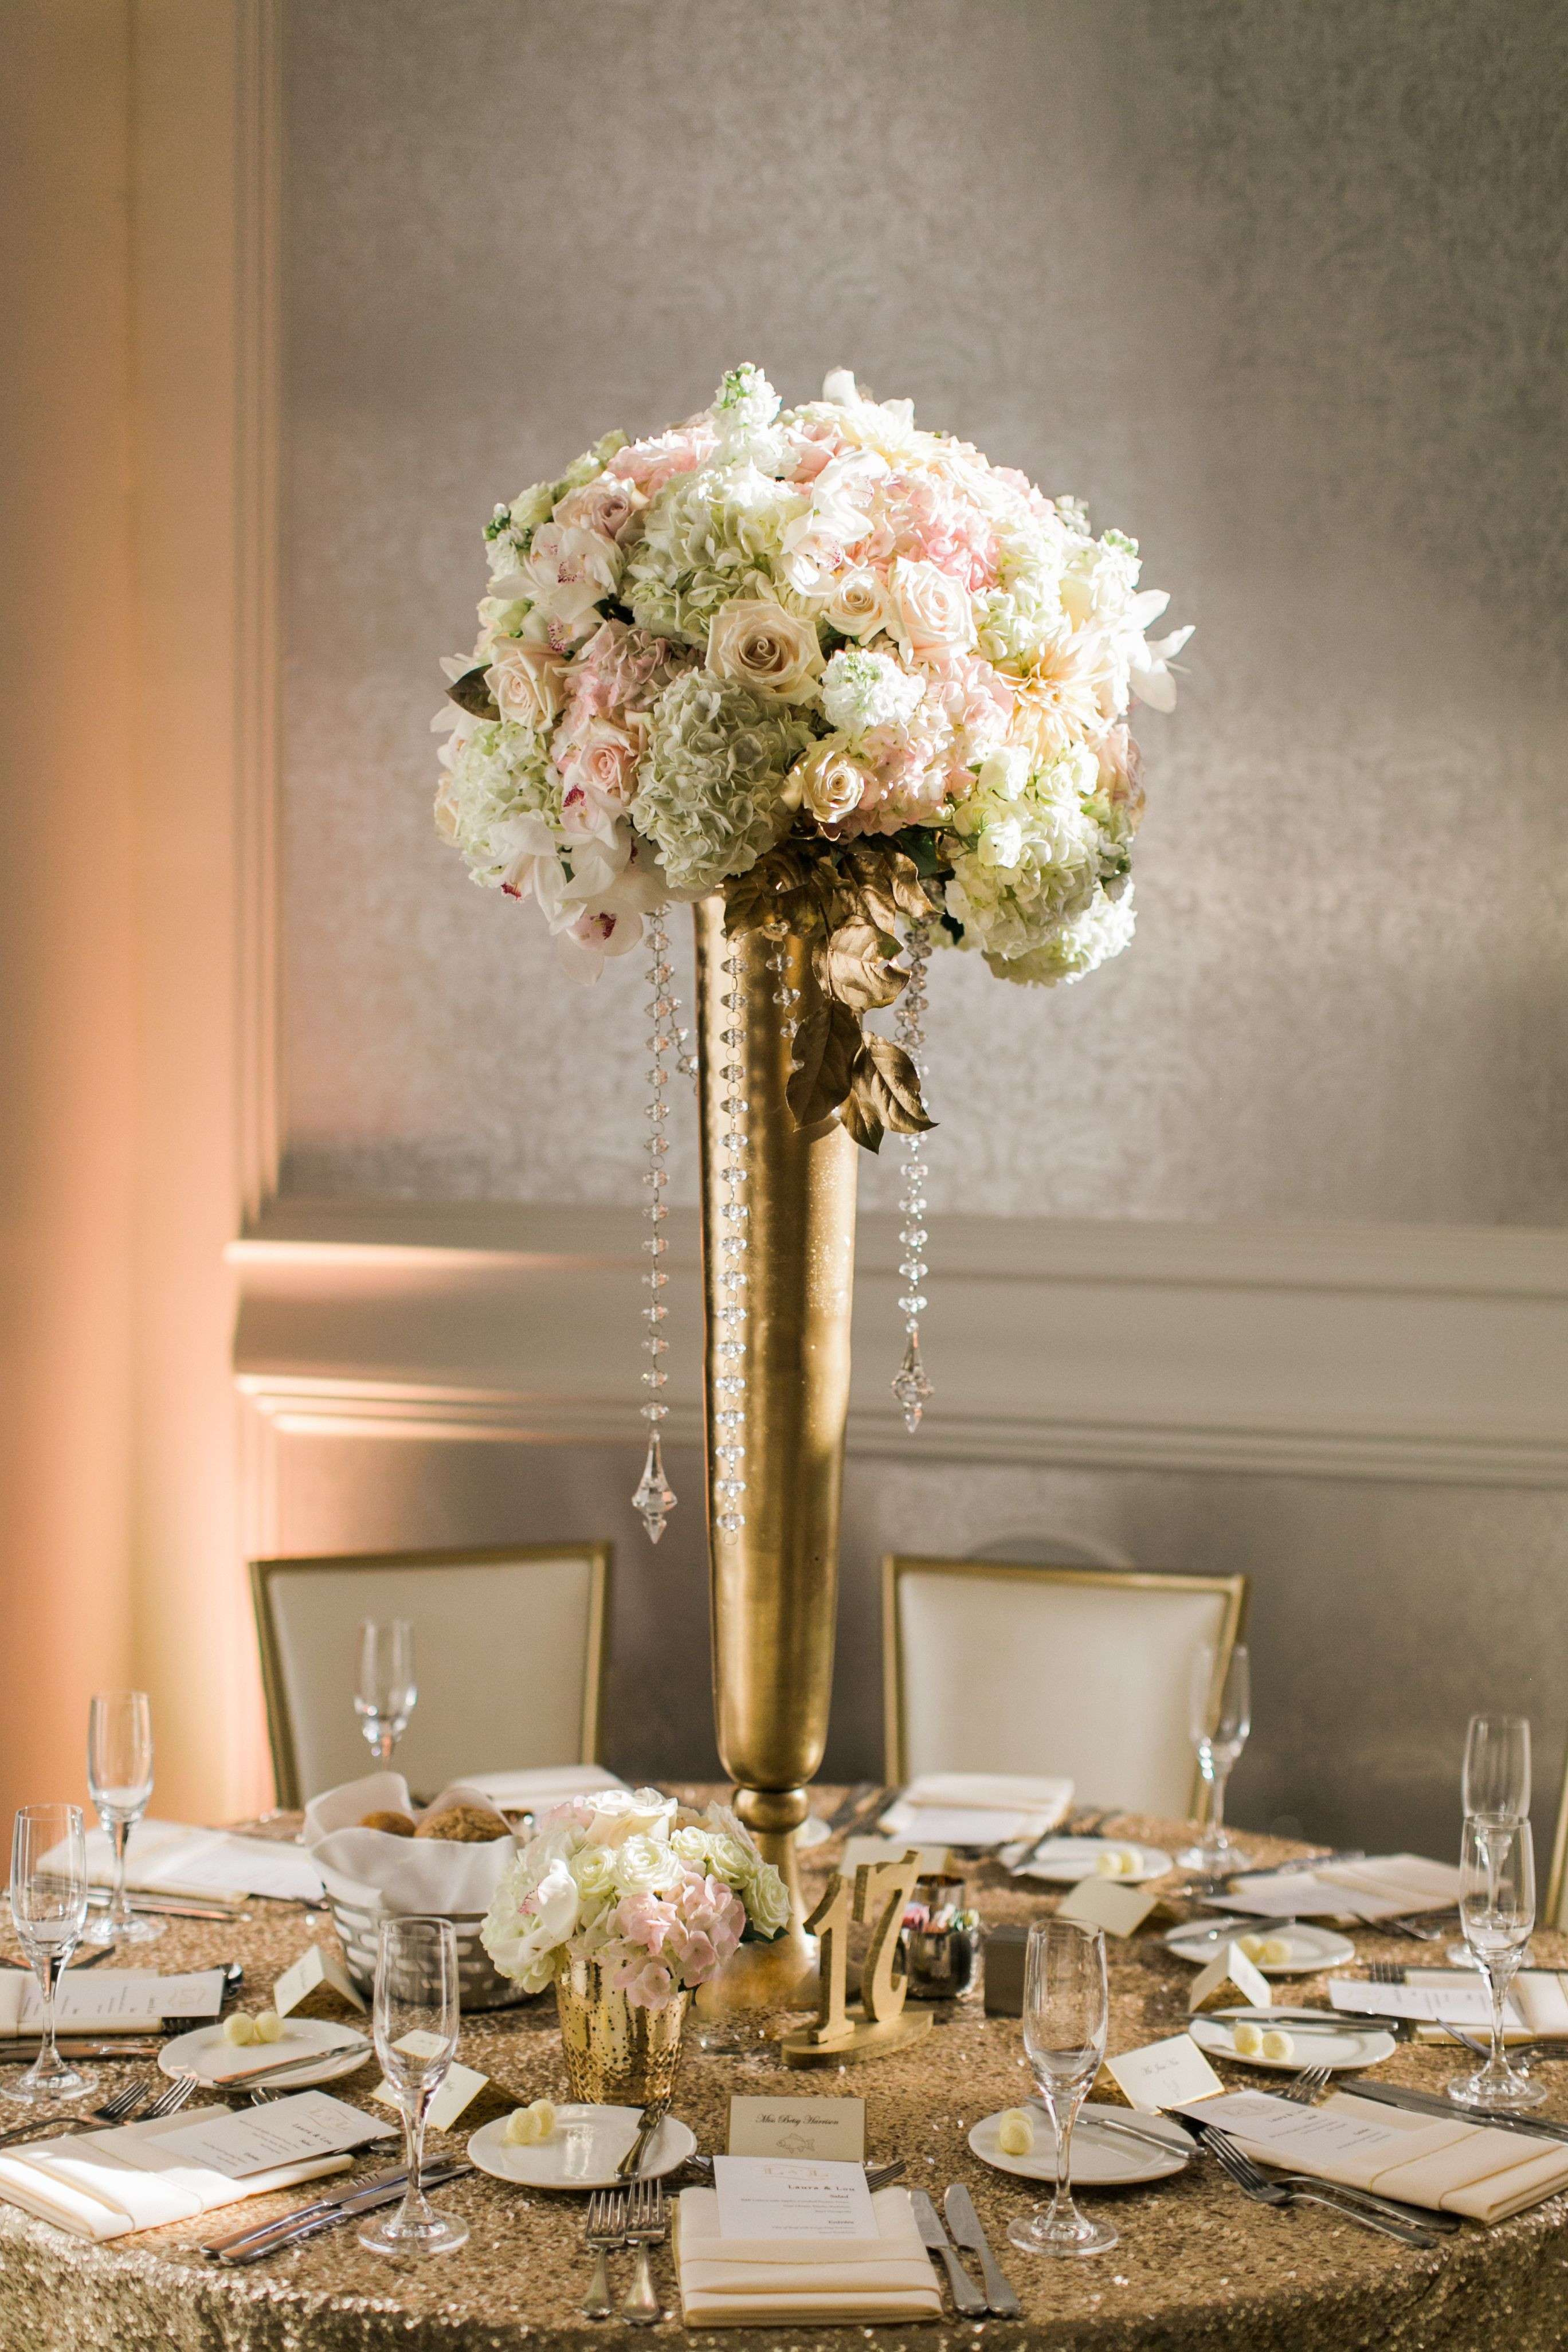 tall gold vases for wedding centerpieces of 18 inspirational tall gold vases for wedding bogekompresorturkiye com intended for tall gold vase centerpiece bridal ideas pinterest scheme tall gold centerpieces 33 new tall